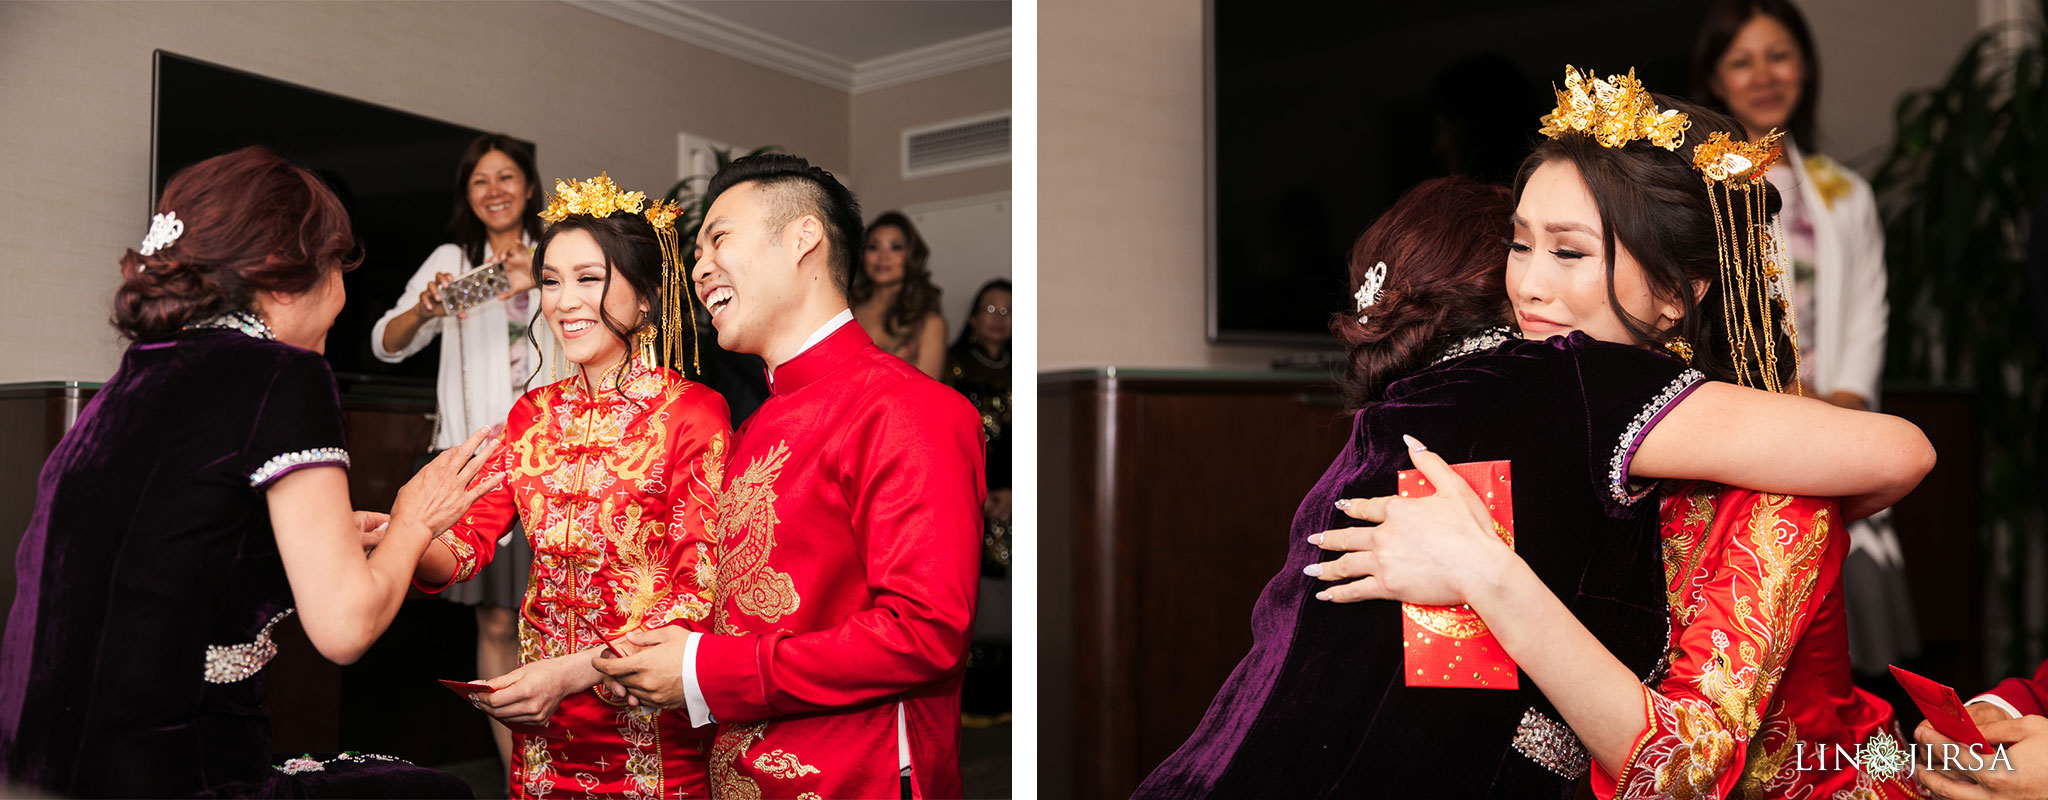 006 the villa at lifetime events westminster chinese wedding photography